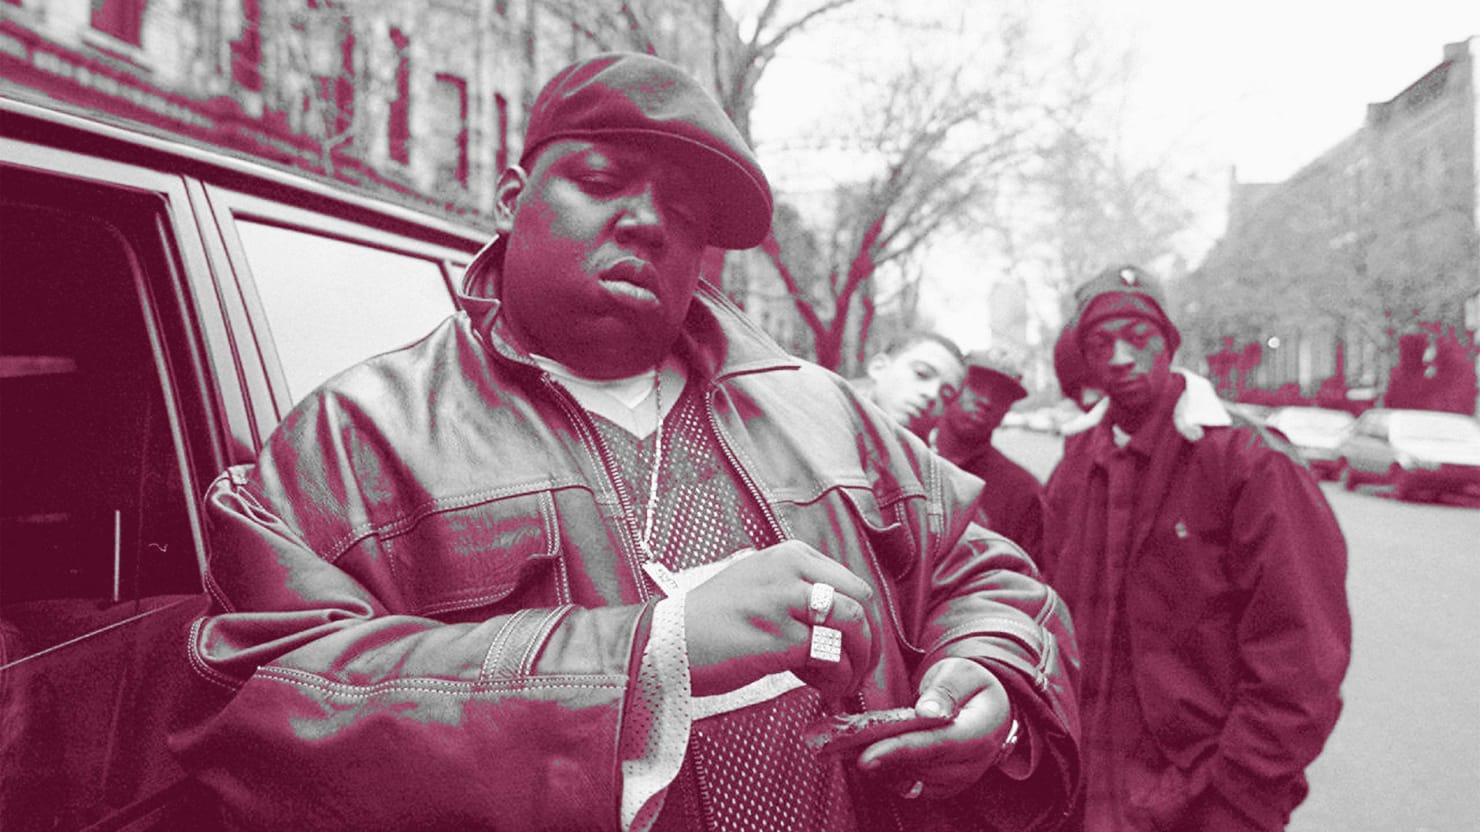 The Notorious B.I.G.'s 'Life After Death' at 20: A Jubilant, Paranoid Ode to a Legendary MC